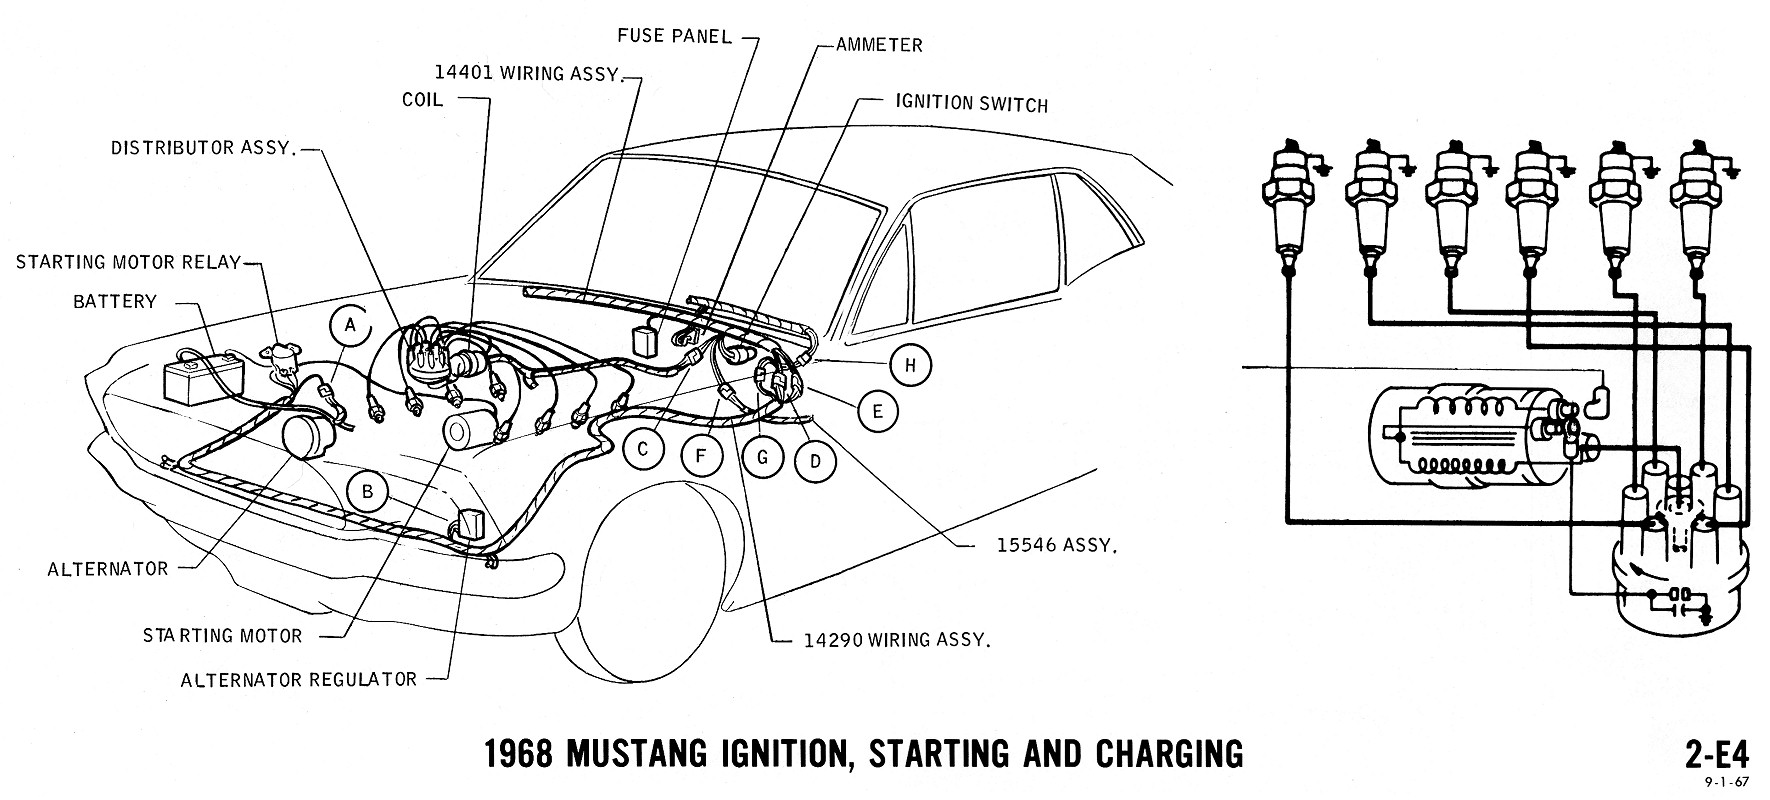 1968 mustang wiring diagrams and vacuum schematics average joe rh averagejoerestoration com 1969 mustang wiring diagram online 1969 mustang wiring diagram pdf